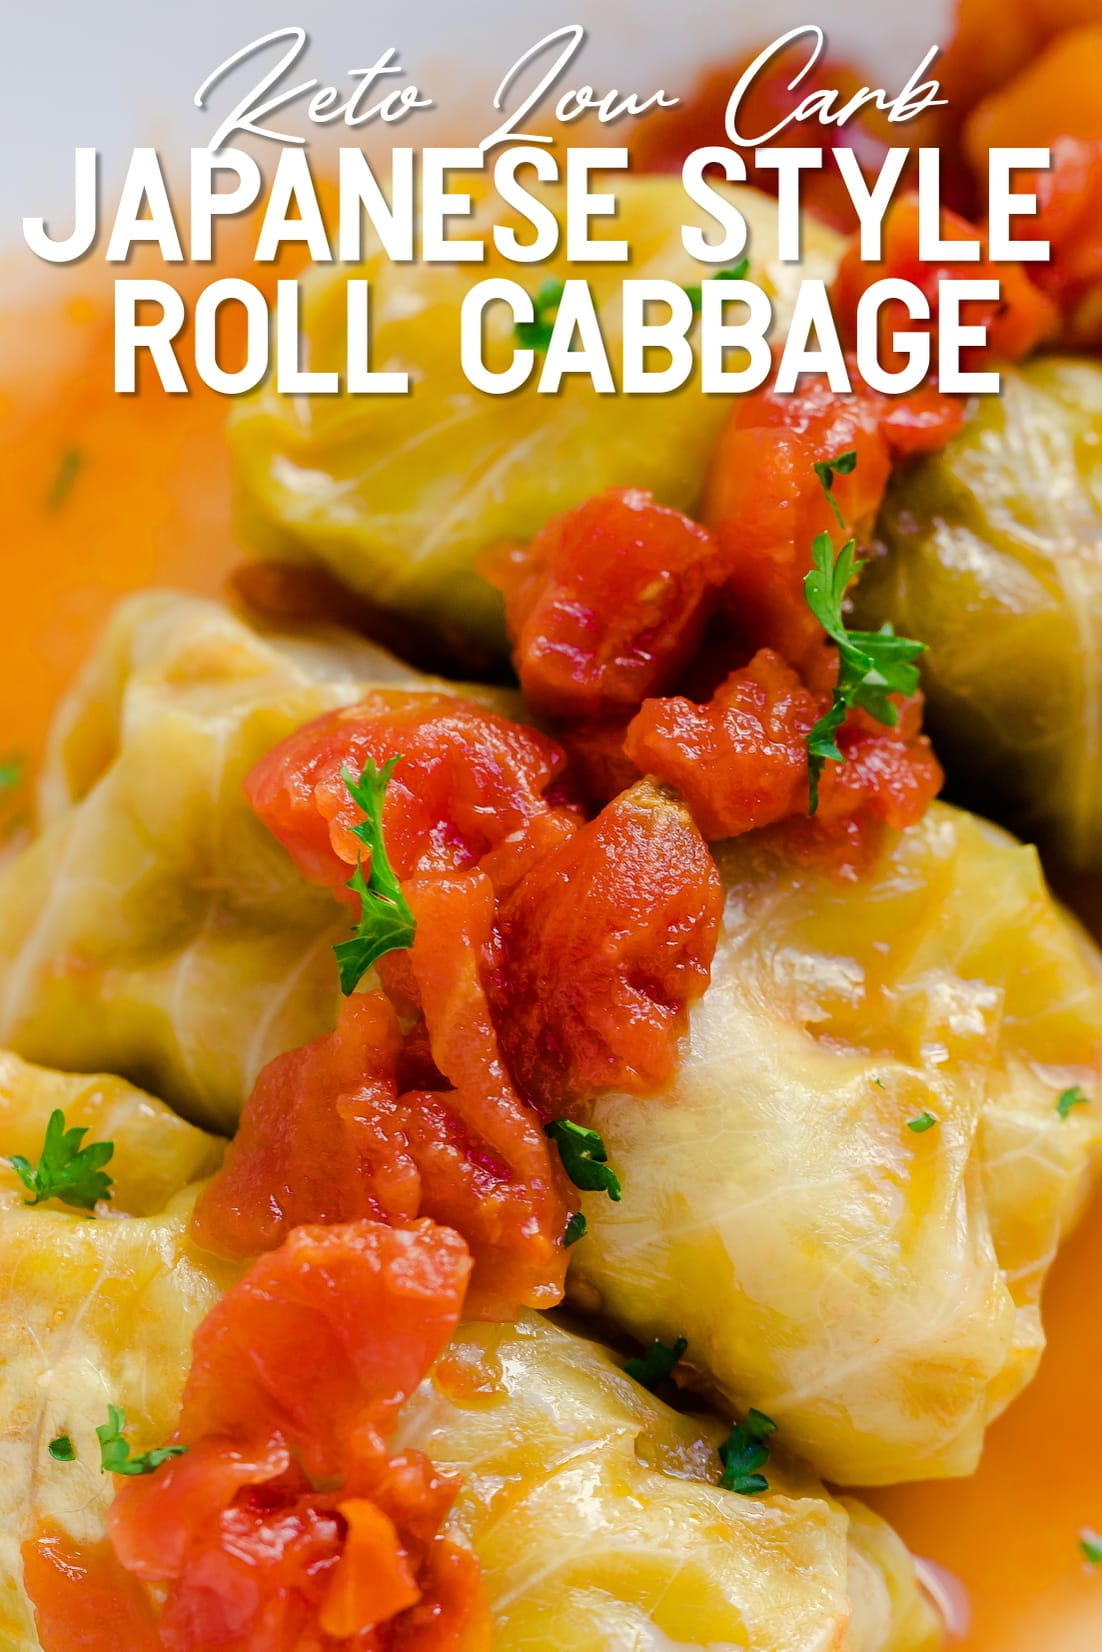 Keto Japanese Style Roll Cabbage close up